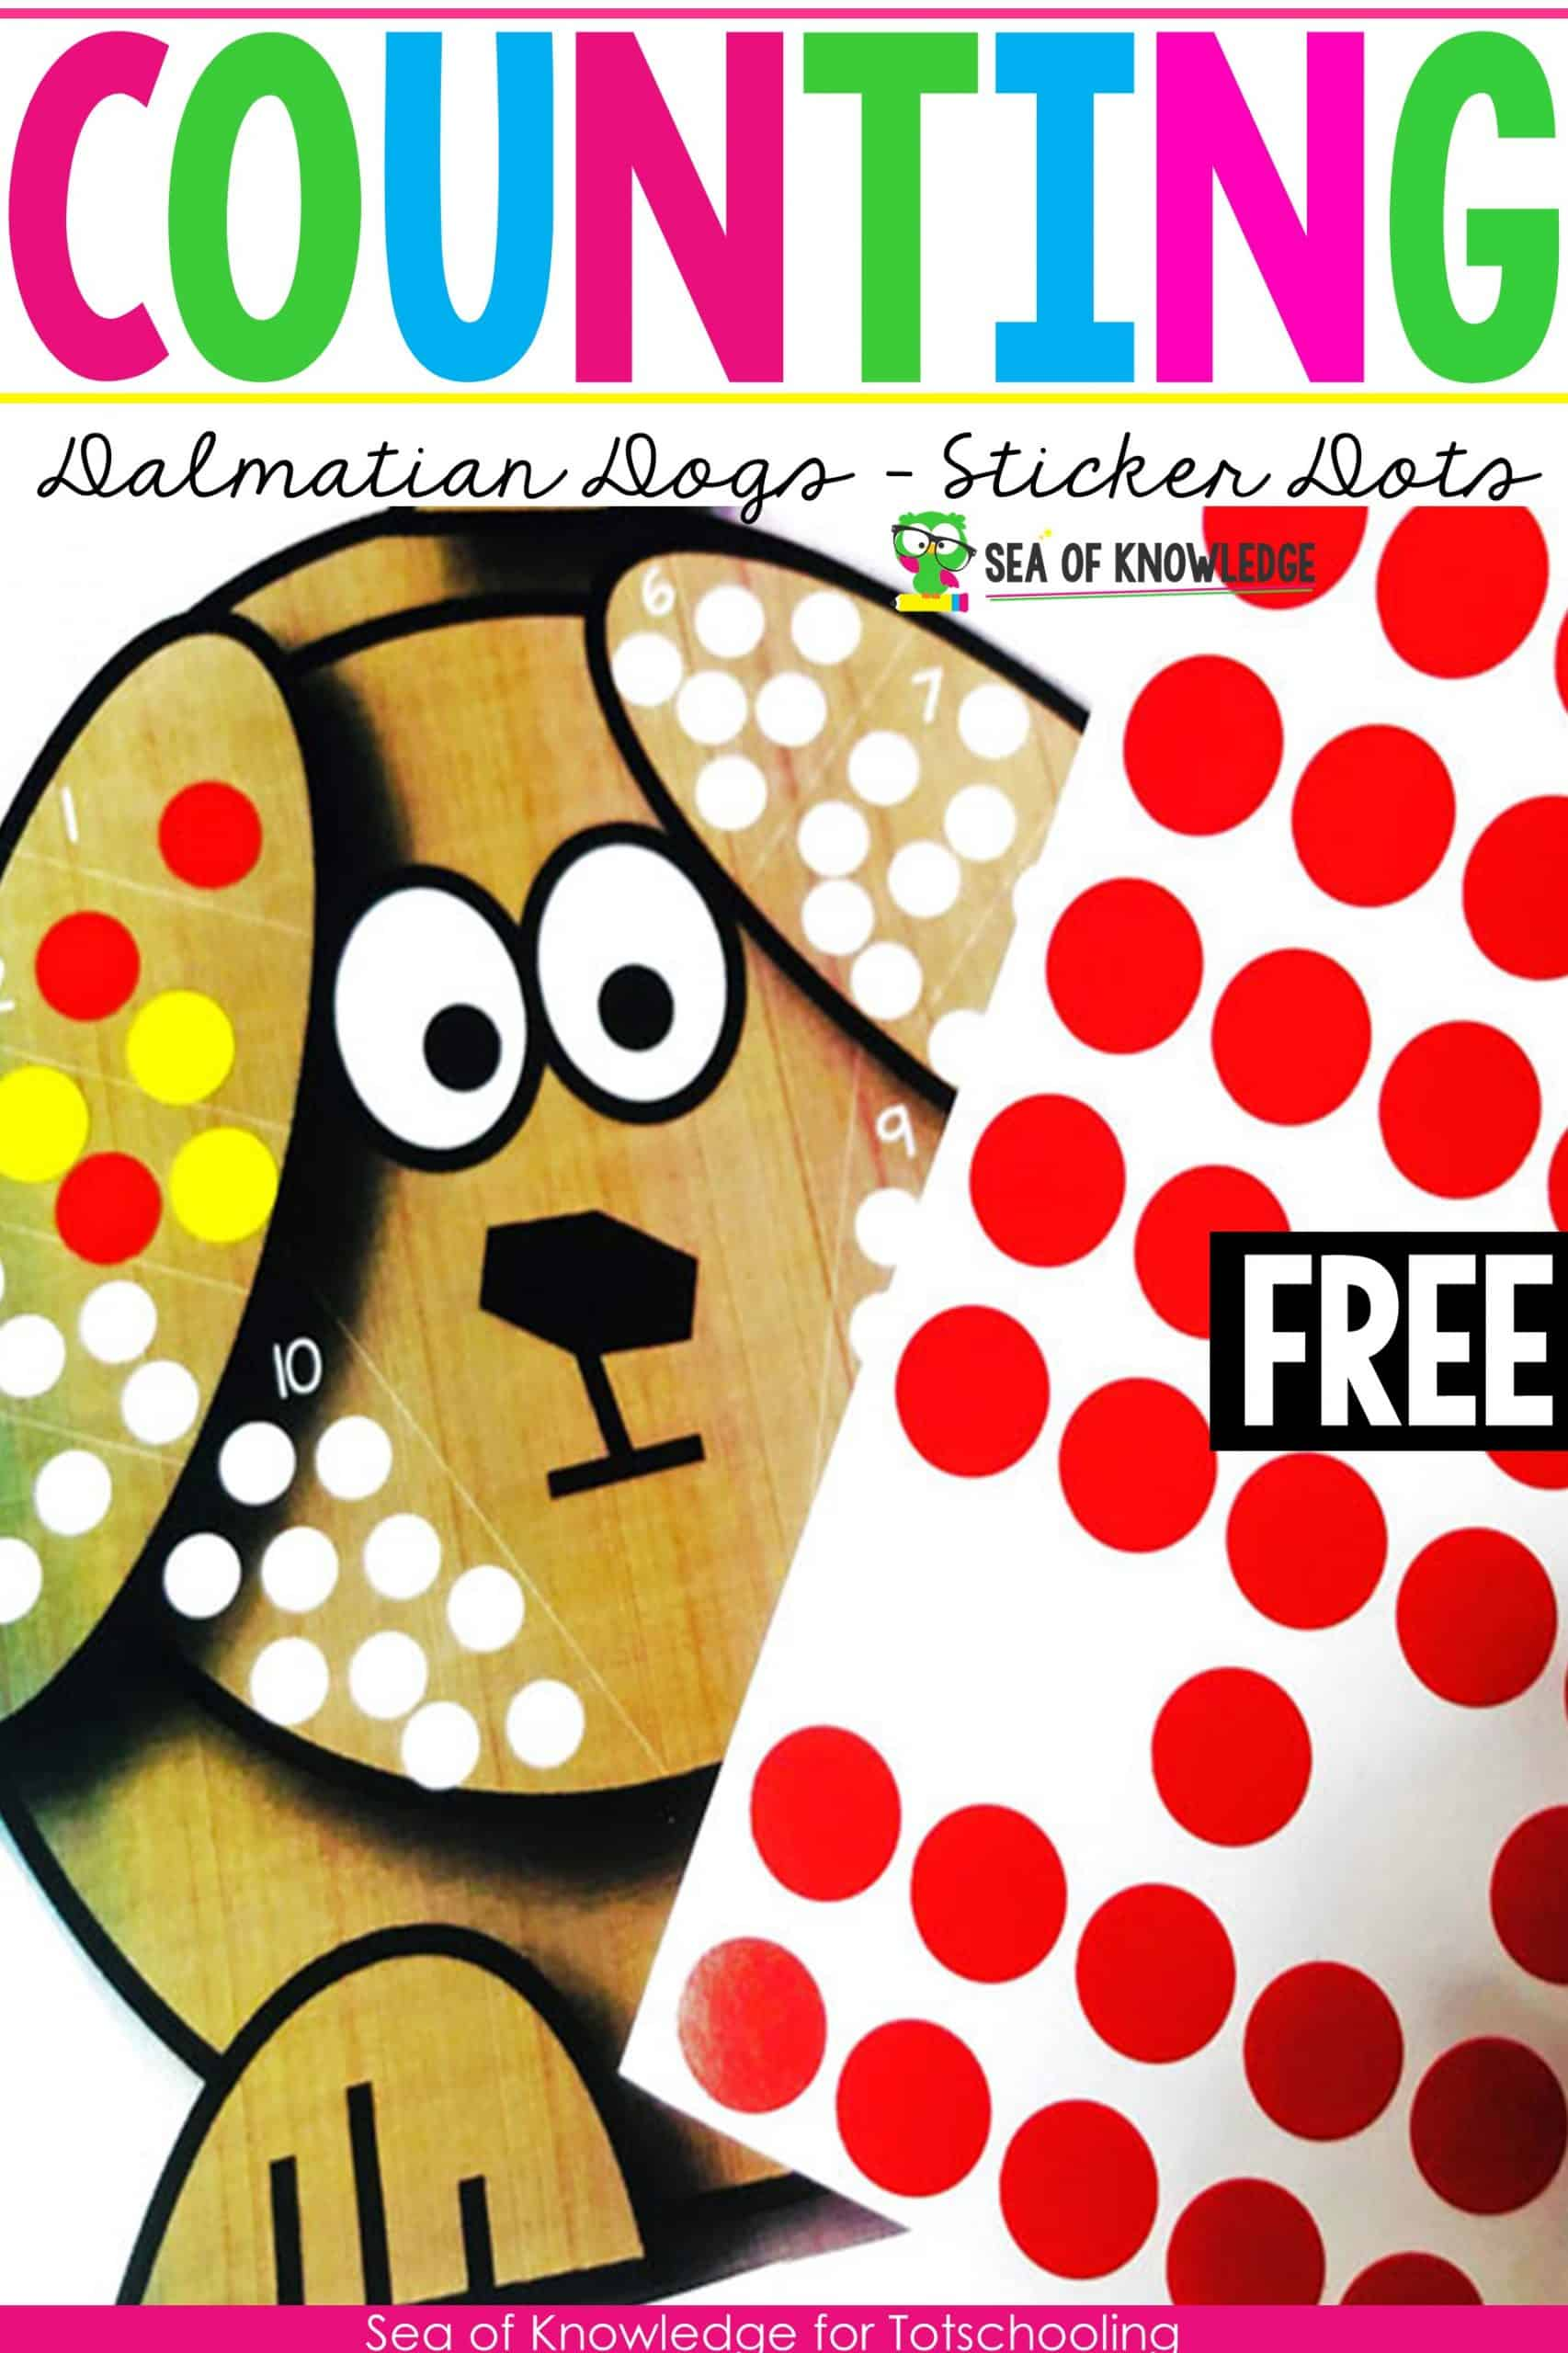 This Counting 1 to 10 Dot Stickers Dalmatian Dogs activity will sure be a hit with your little learners! Looking for a fun way to get kids to count and show their numbers? These fun dalmatian dogs themed printable cards are perfect for that. Learners will identify the number on each section and then place that many dot stickers to fill the 'dots on their dogs'.